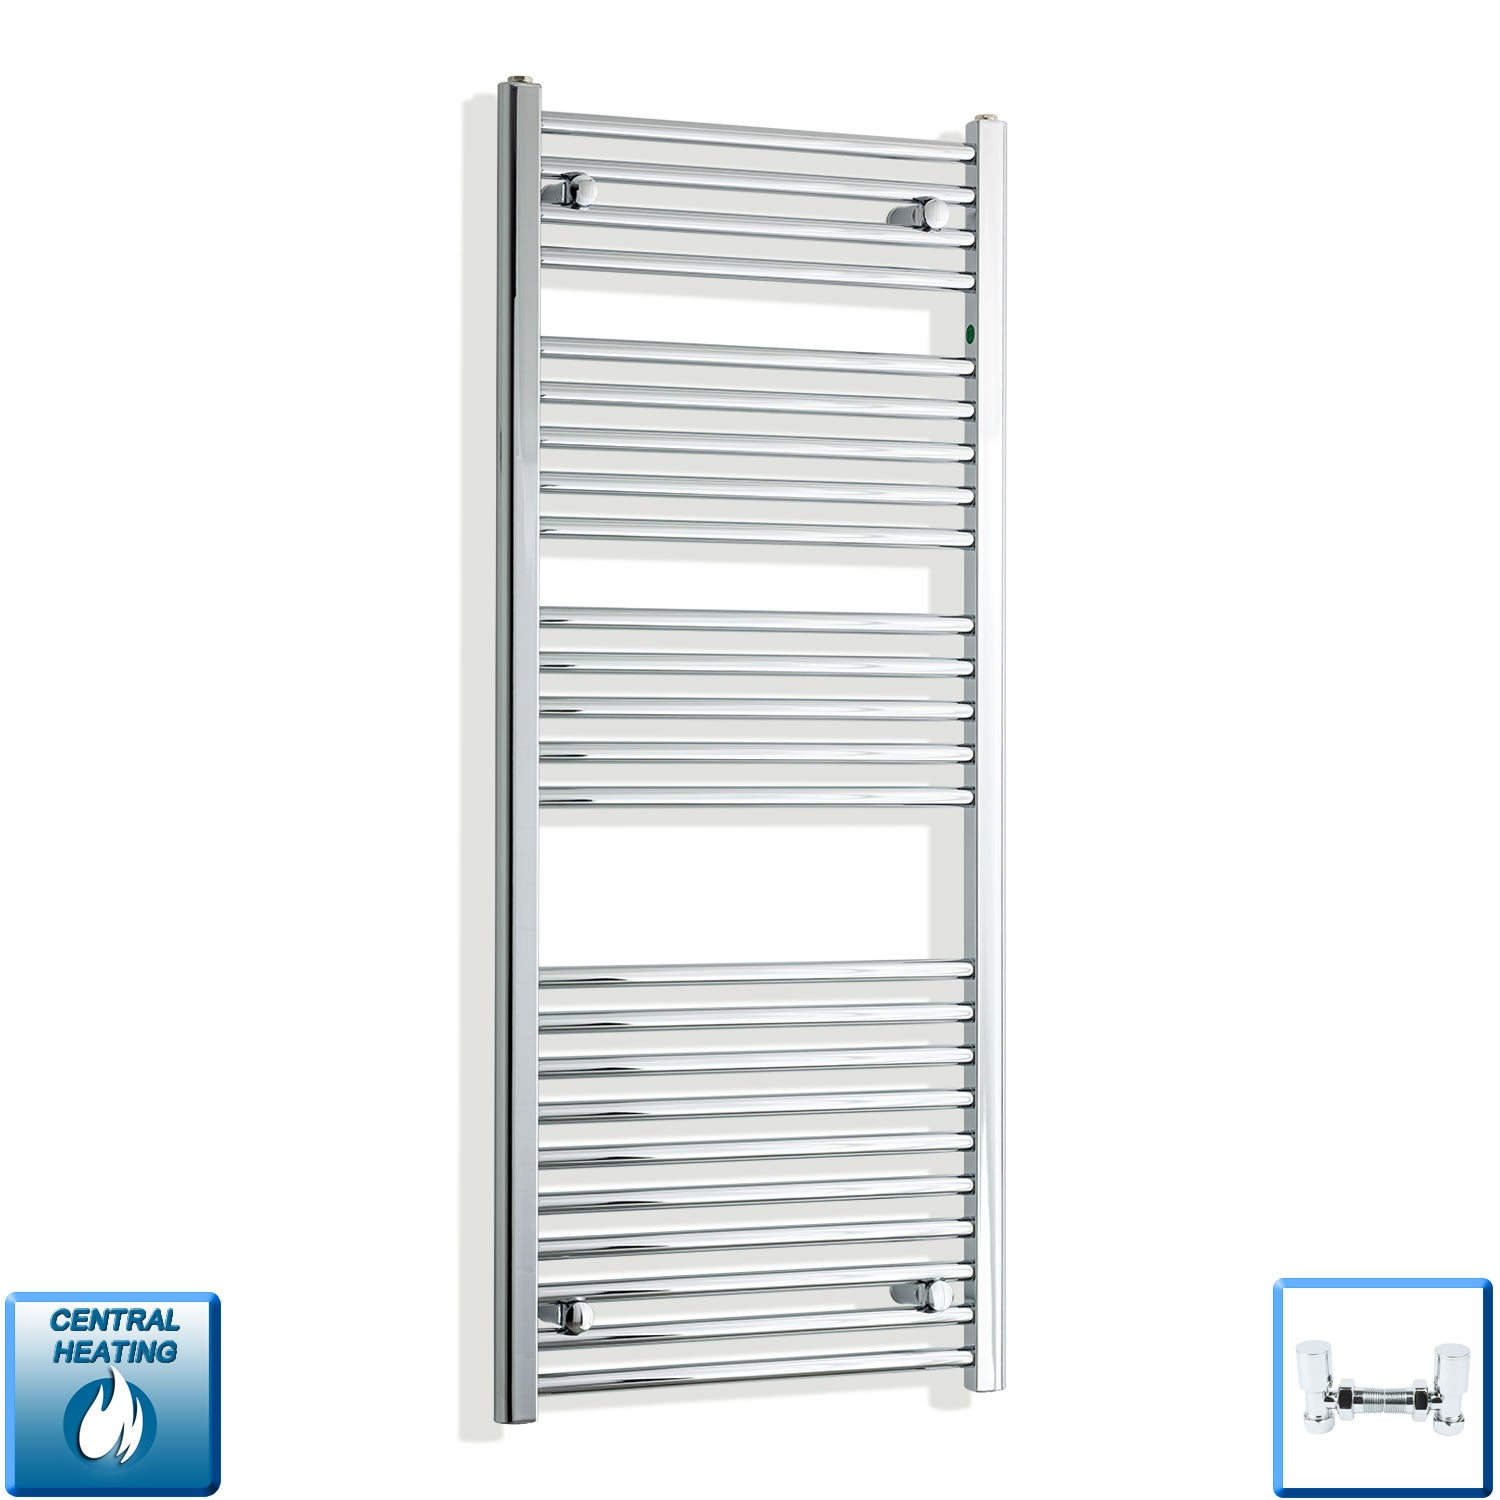 550mm Wide 1300mm High Straight Chrome Heated Towel Rail Radiator HTR Central Heating,With Angled Valve